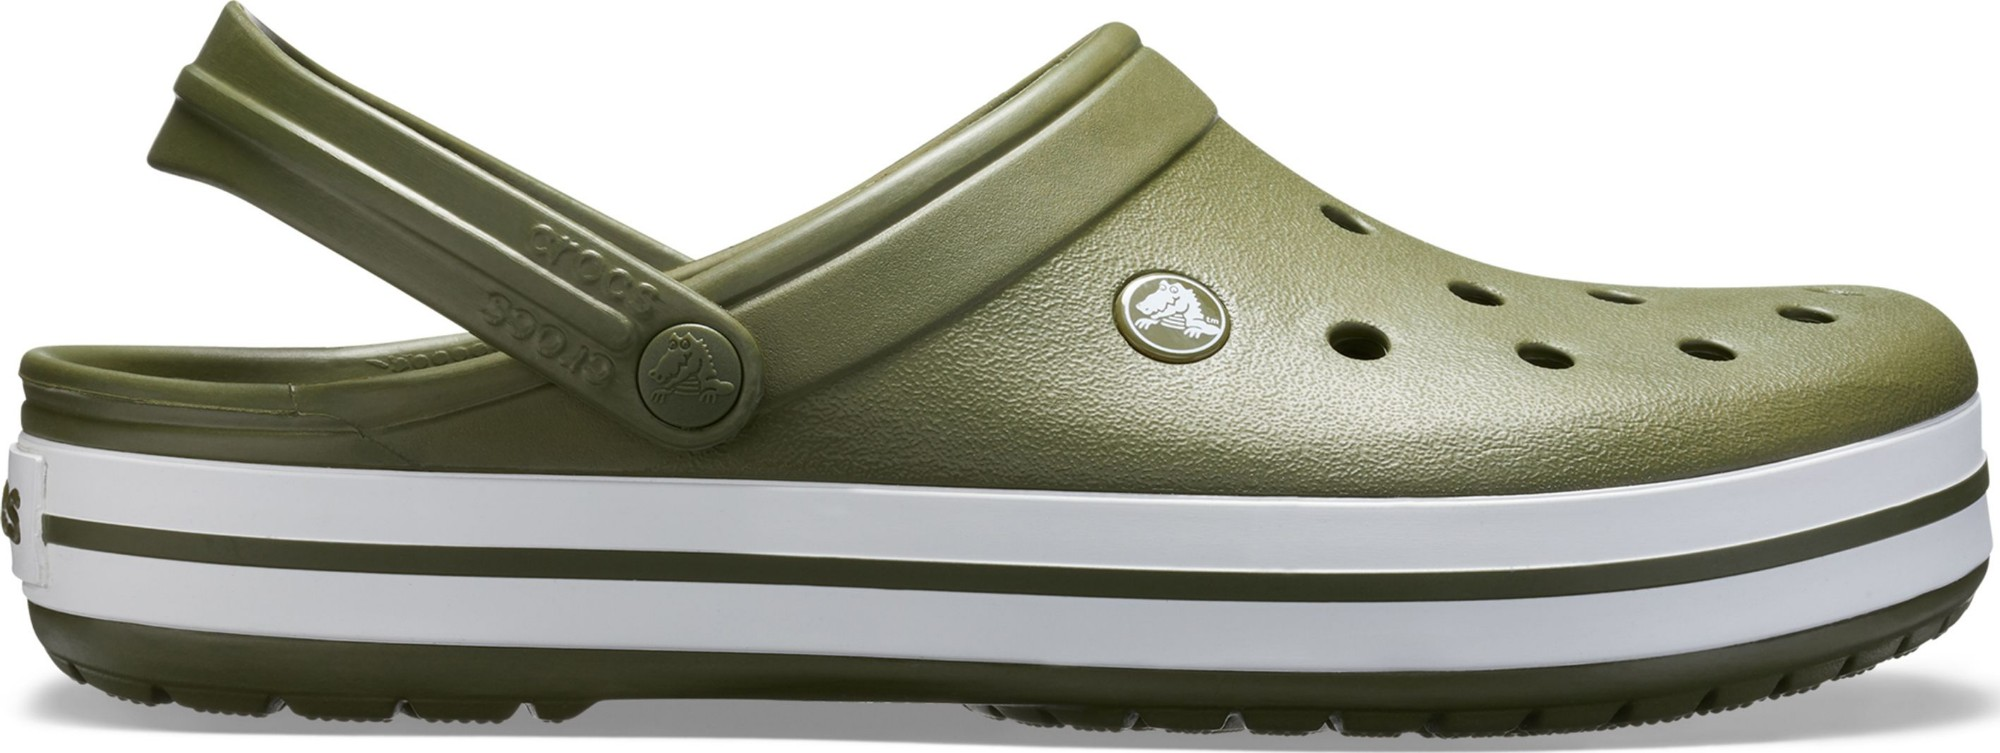 Crocs™ Crocband™ Army Green/White 43,5